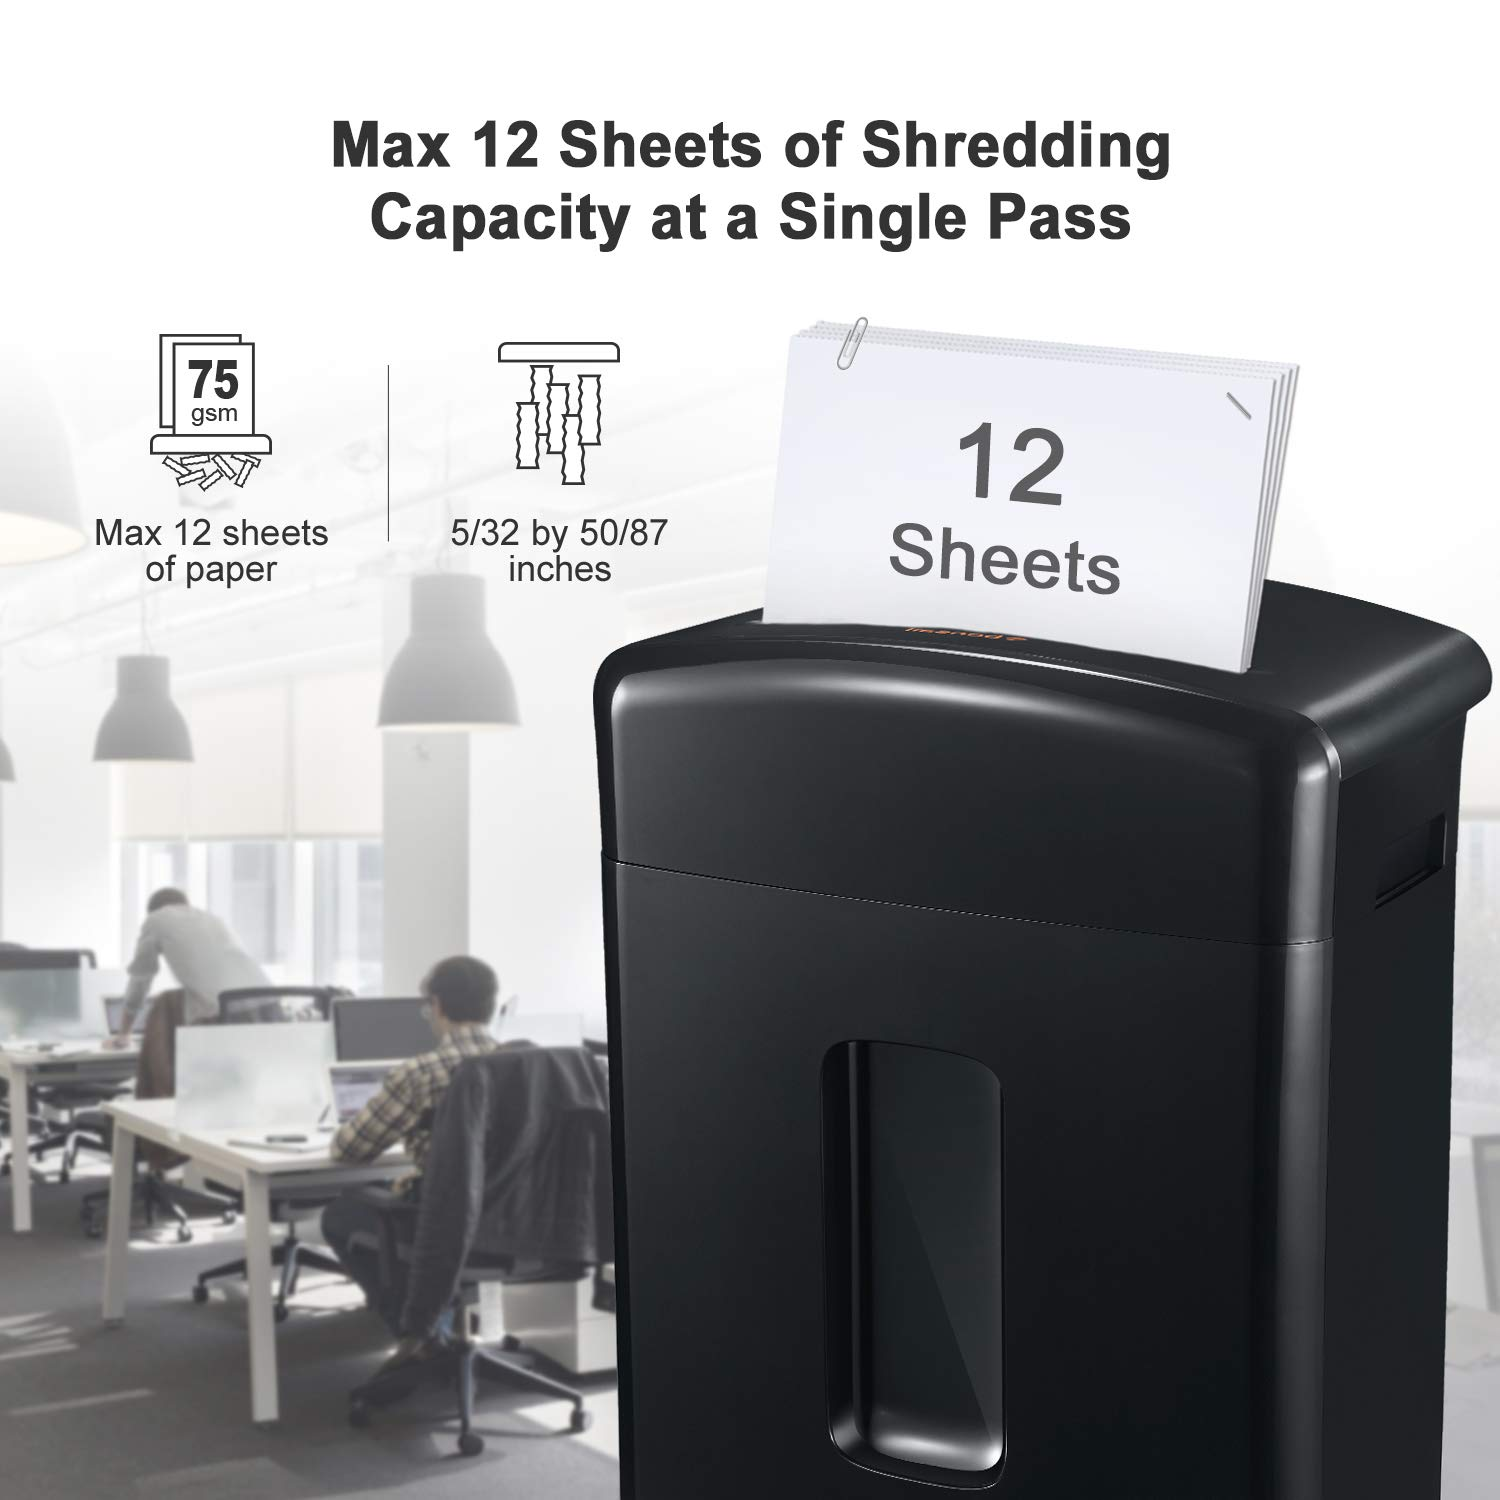 Bonsaii 12-Sheet Cross-Cut Paper, CD/DVD, and Credit Card Shredder with 3.5-gallons Pullout Basket, Black (C220-A) by bonsaii (Image #2)